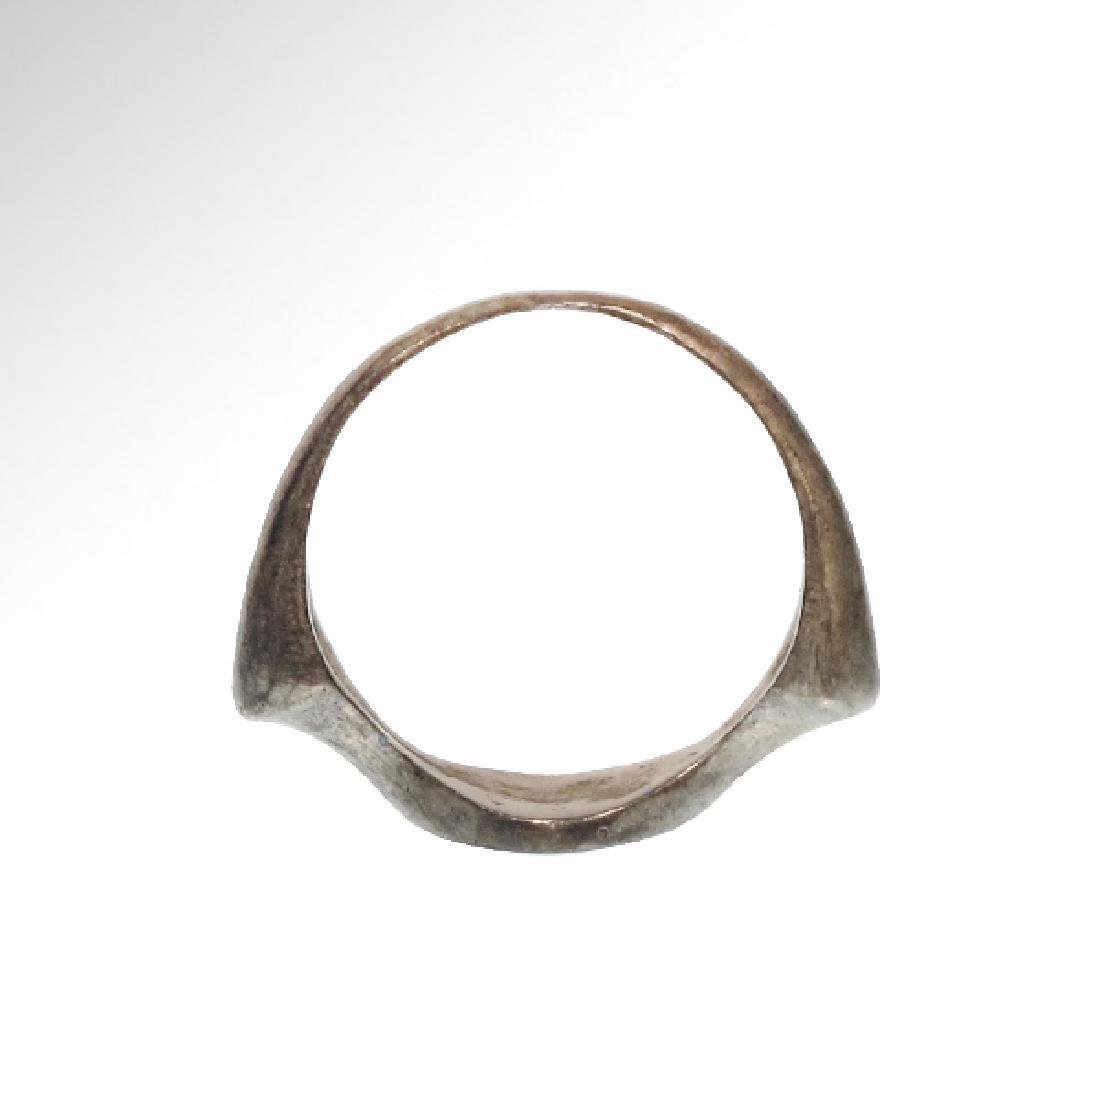 Byzantine Silver Ring with Monogram Cross - 6